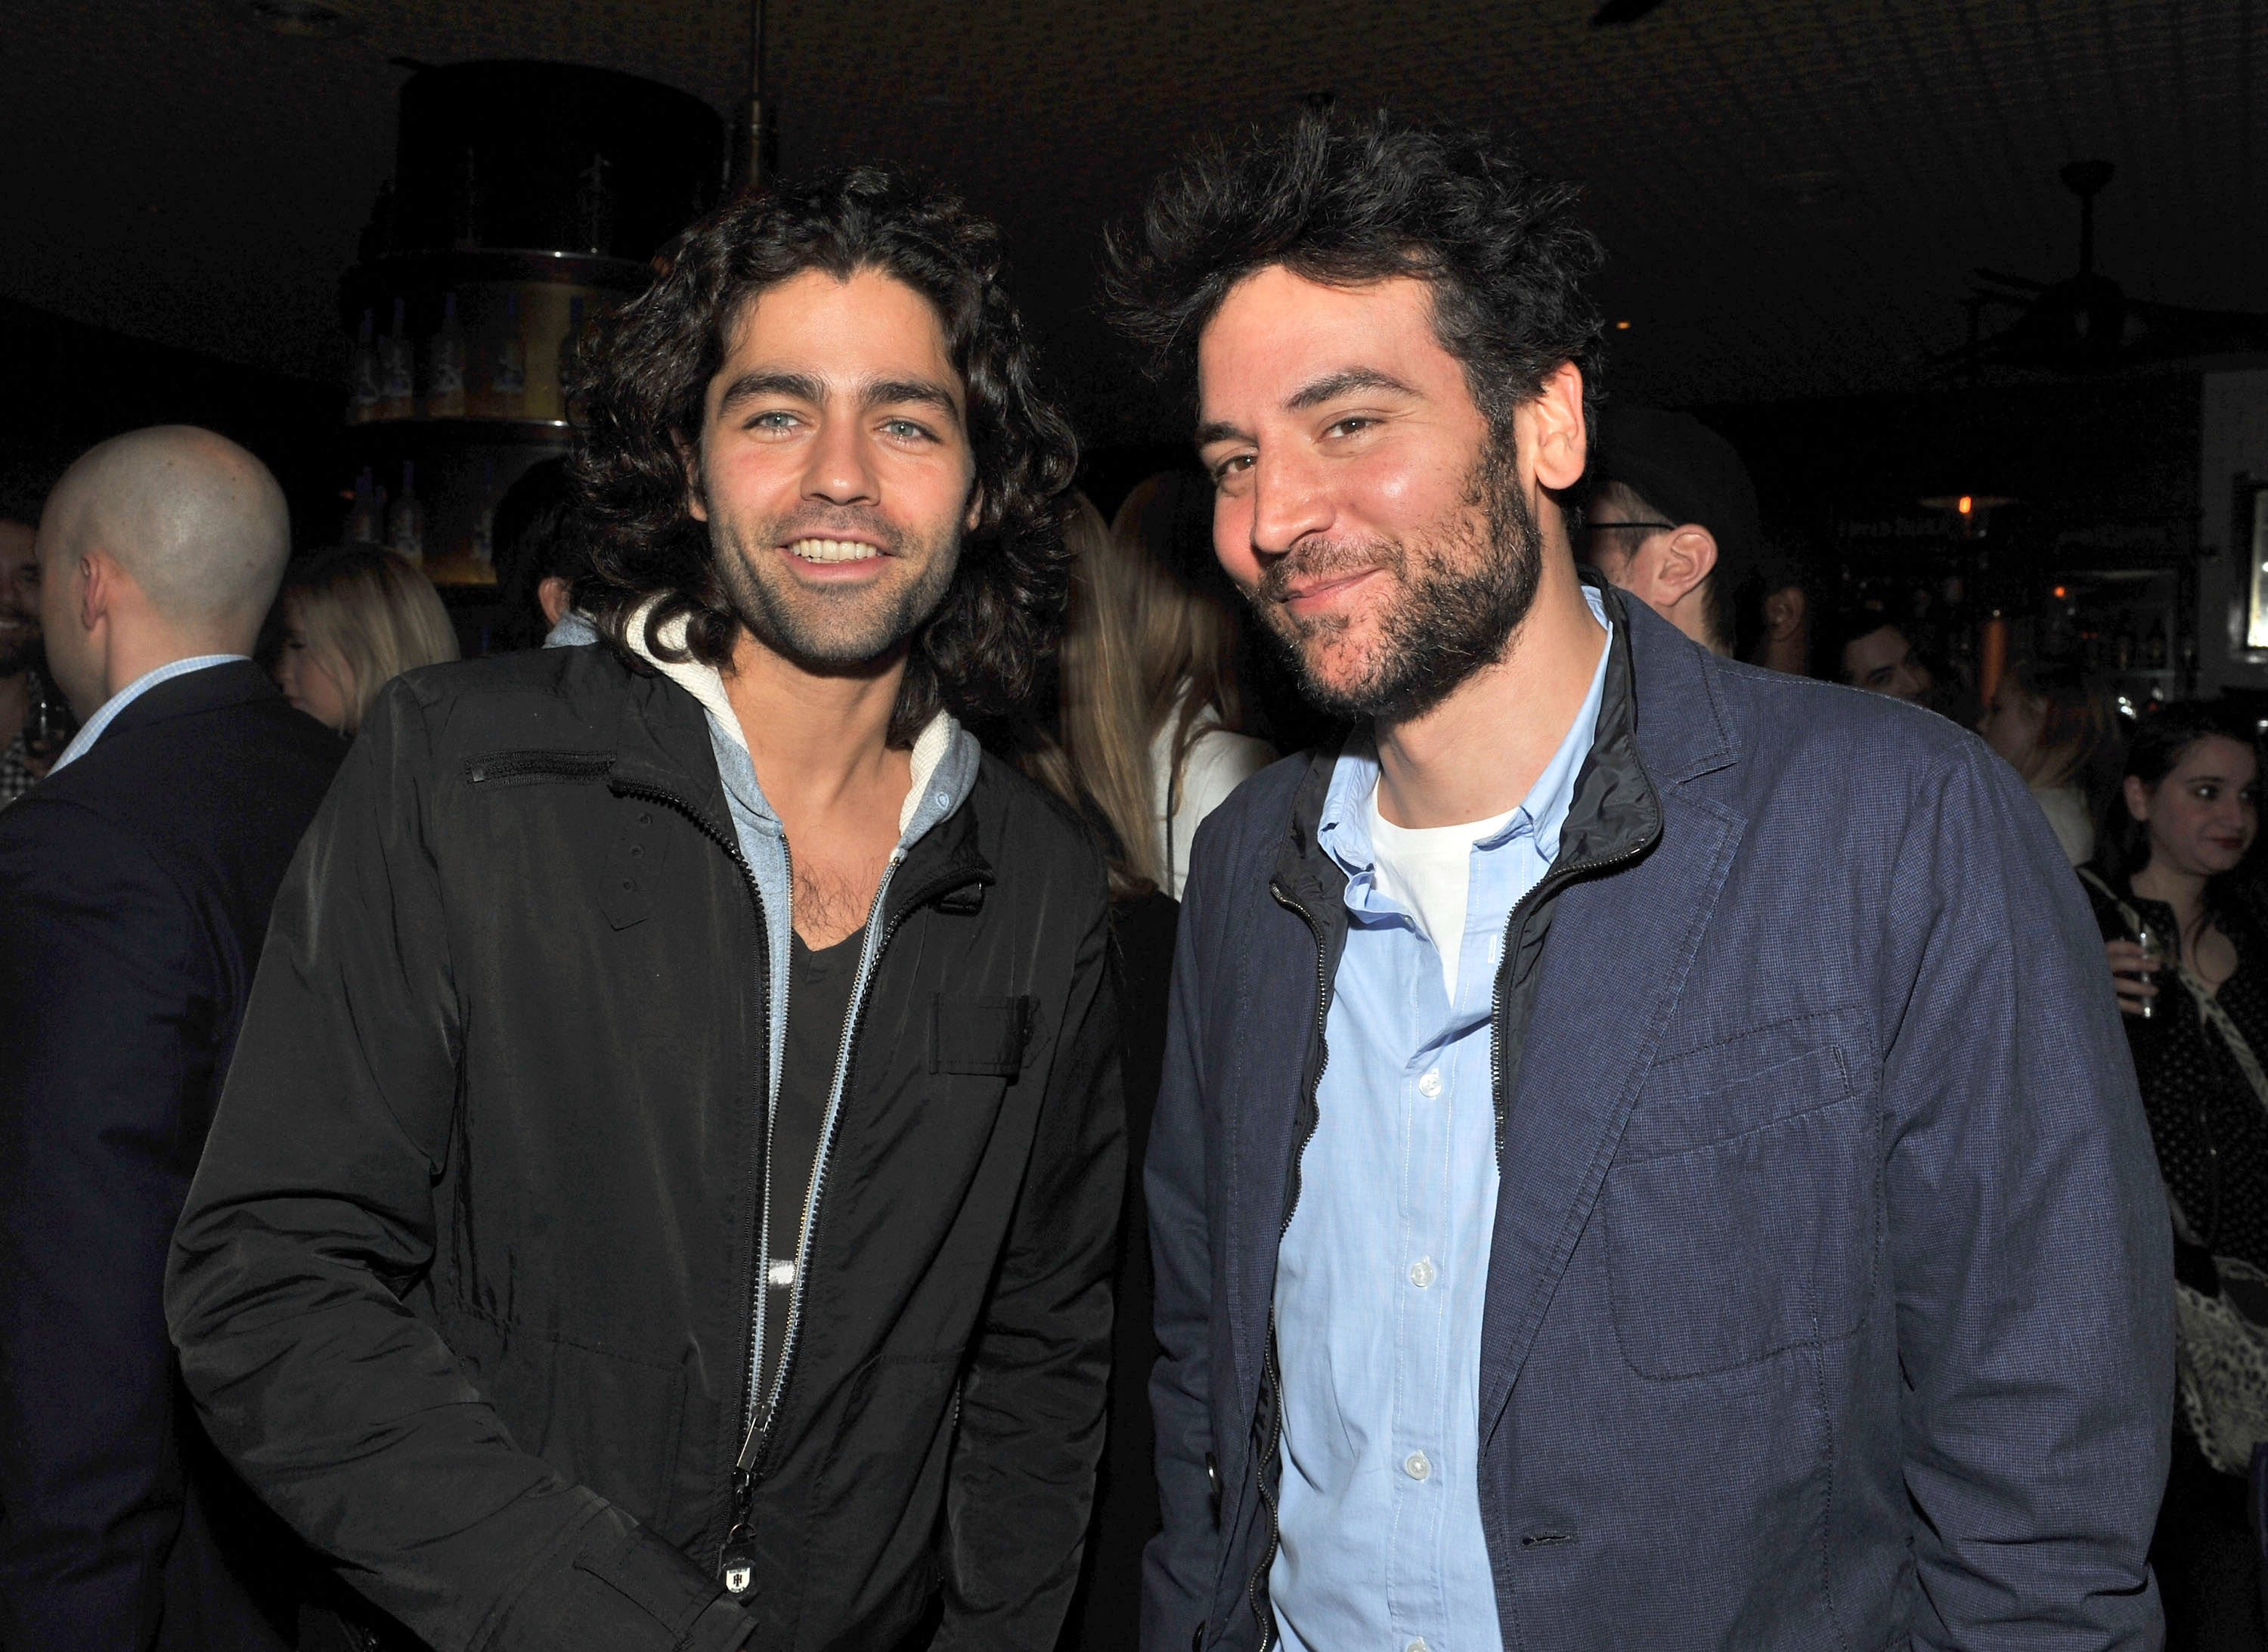 Adrian Grenier and Josh Radnor teamed up for the screen